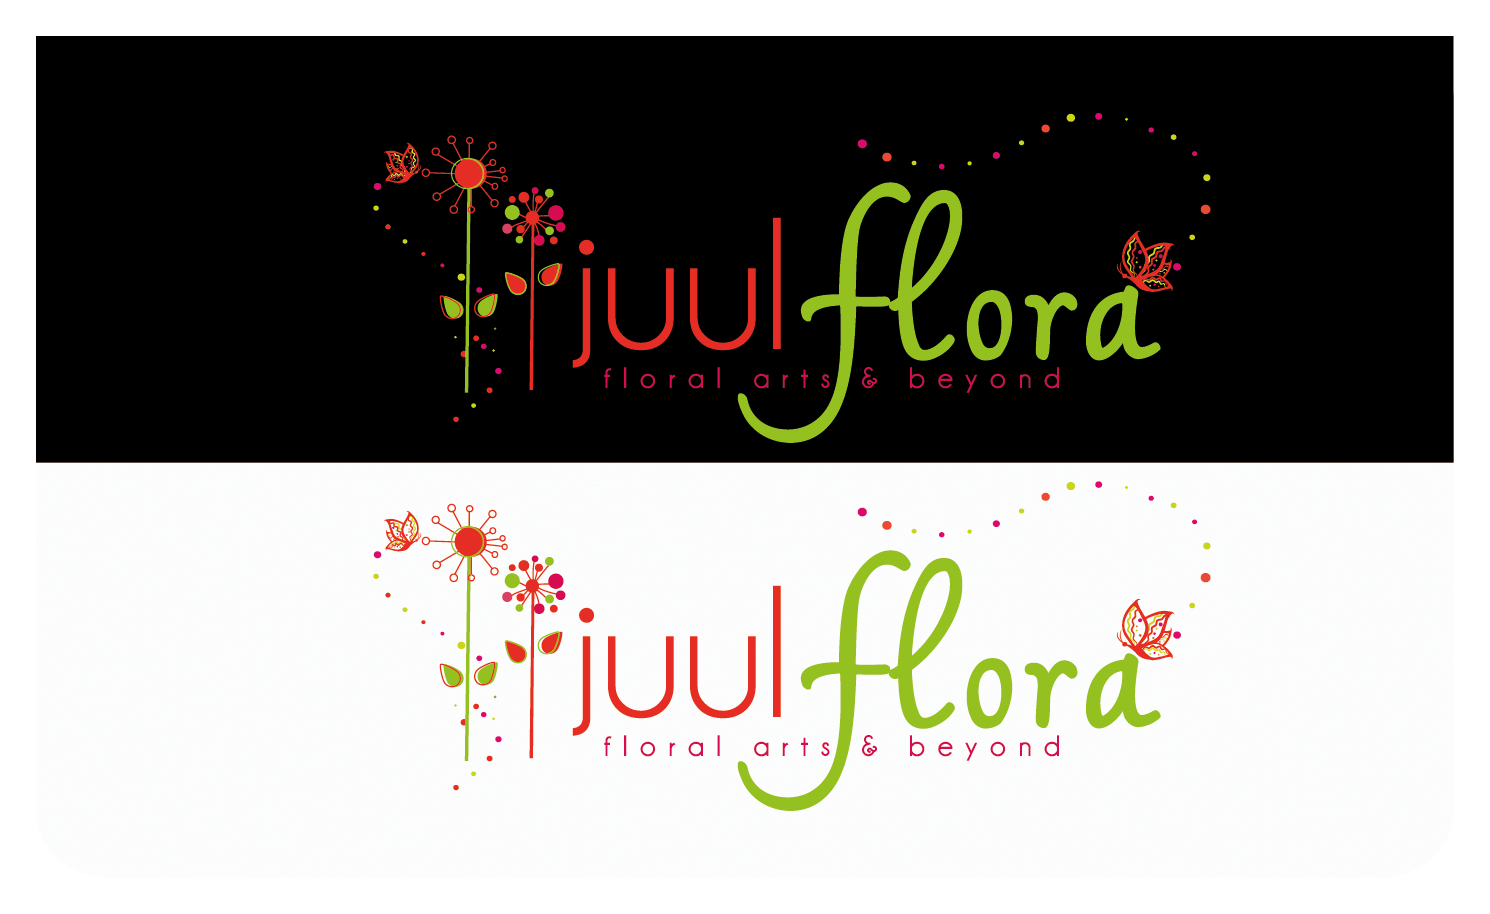 New logo wanted for Juul Flora